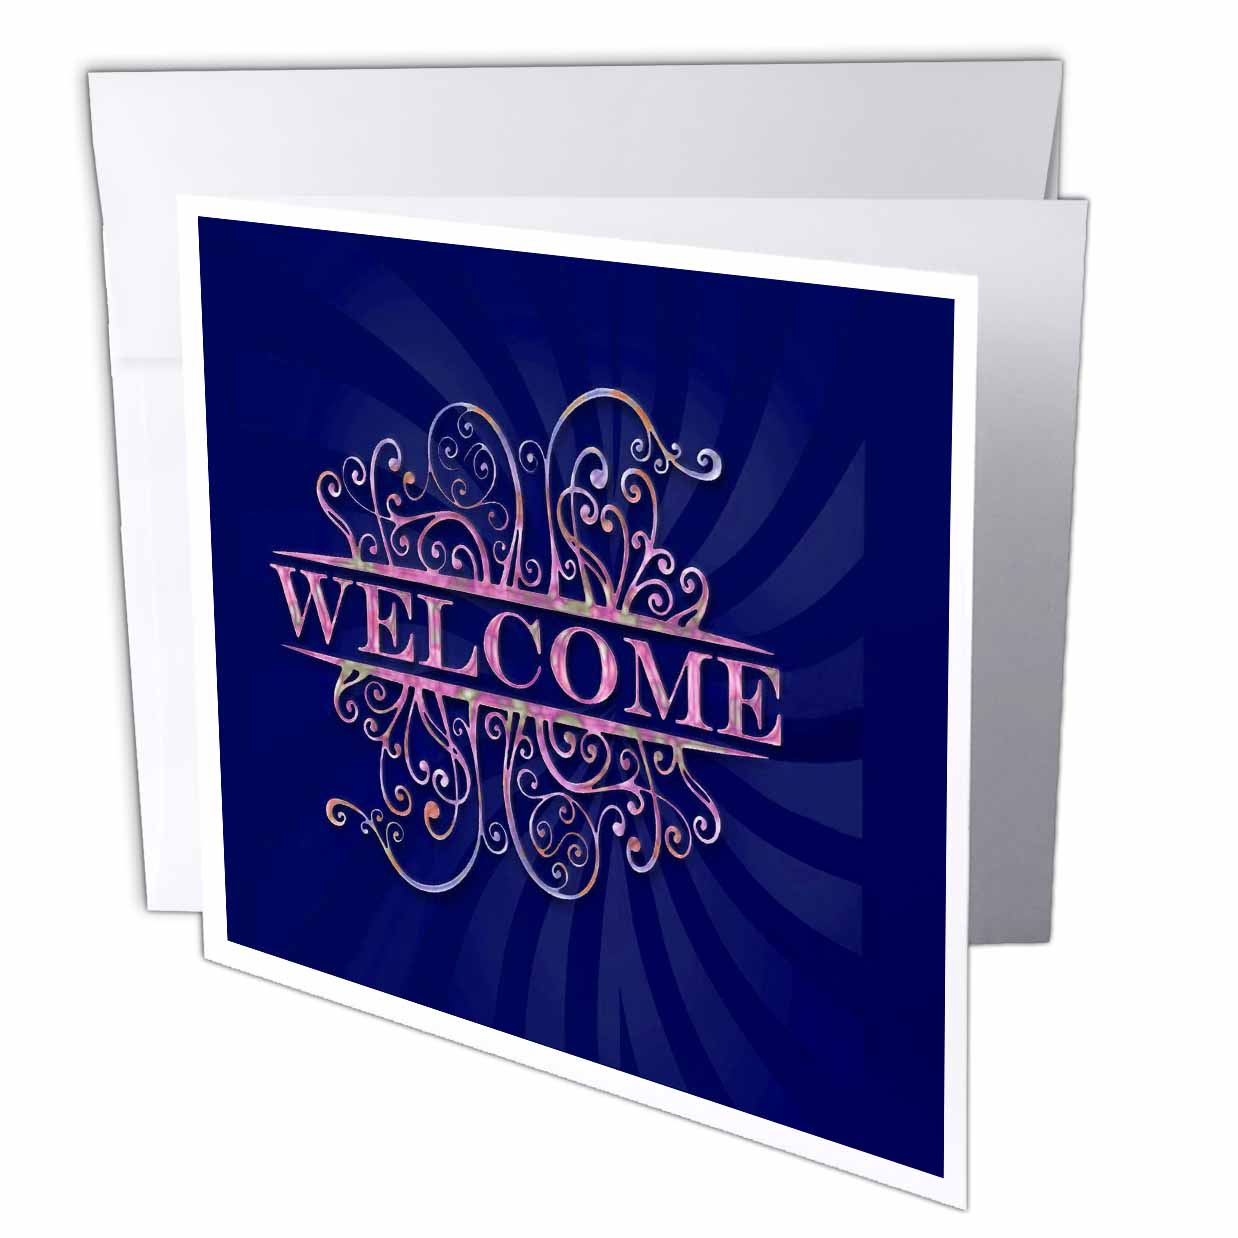 3dRose Welcome Home, Blue, Greeting Cards, 6 x 6 inches, set of 6